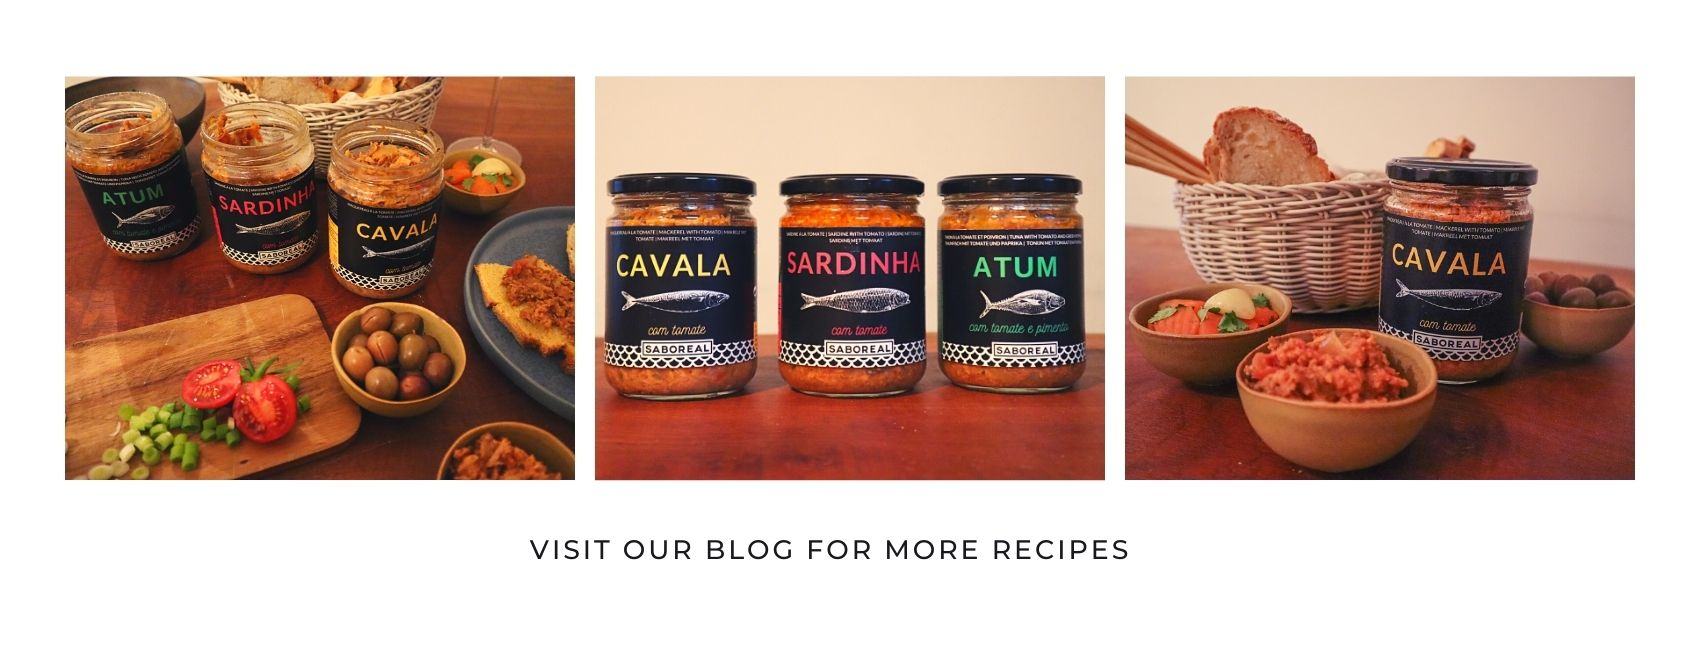 Visit us on our blog and find here some great ideas to use our preserves. Don't forget that the simplest ways to enjoy saboreal, are always the best!